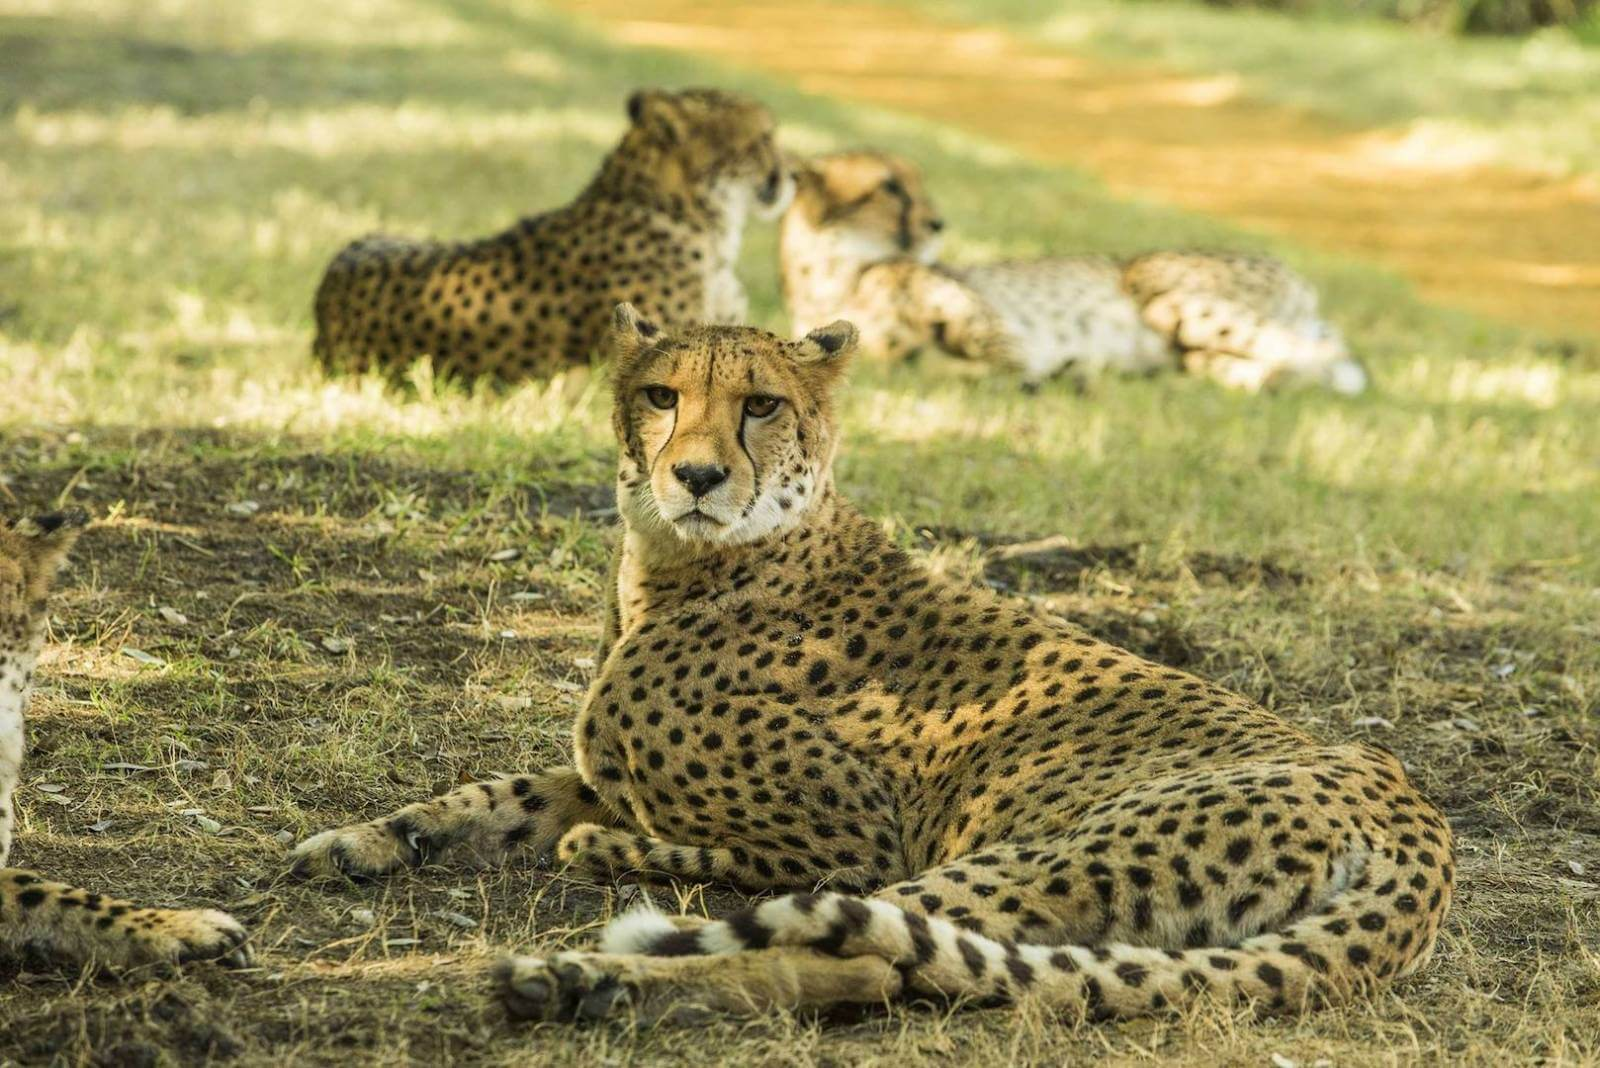 See African animals including cheetahs at Busch Gardens Tampa Bay. Must Do Visitor Guides, MustDo.com